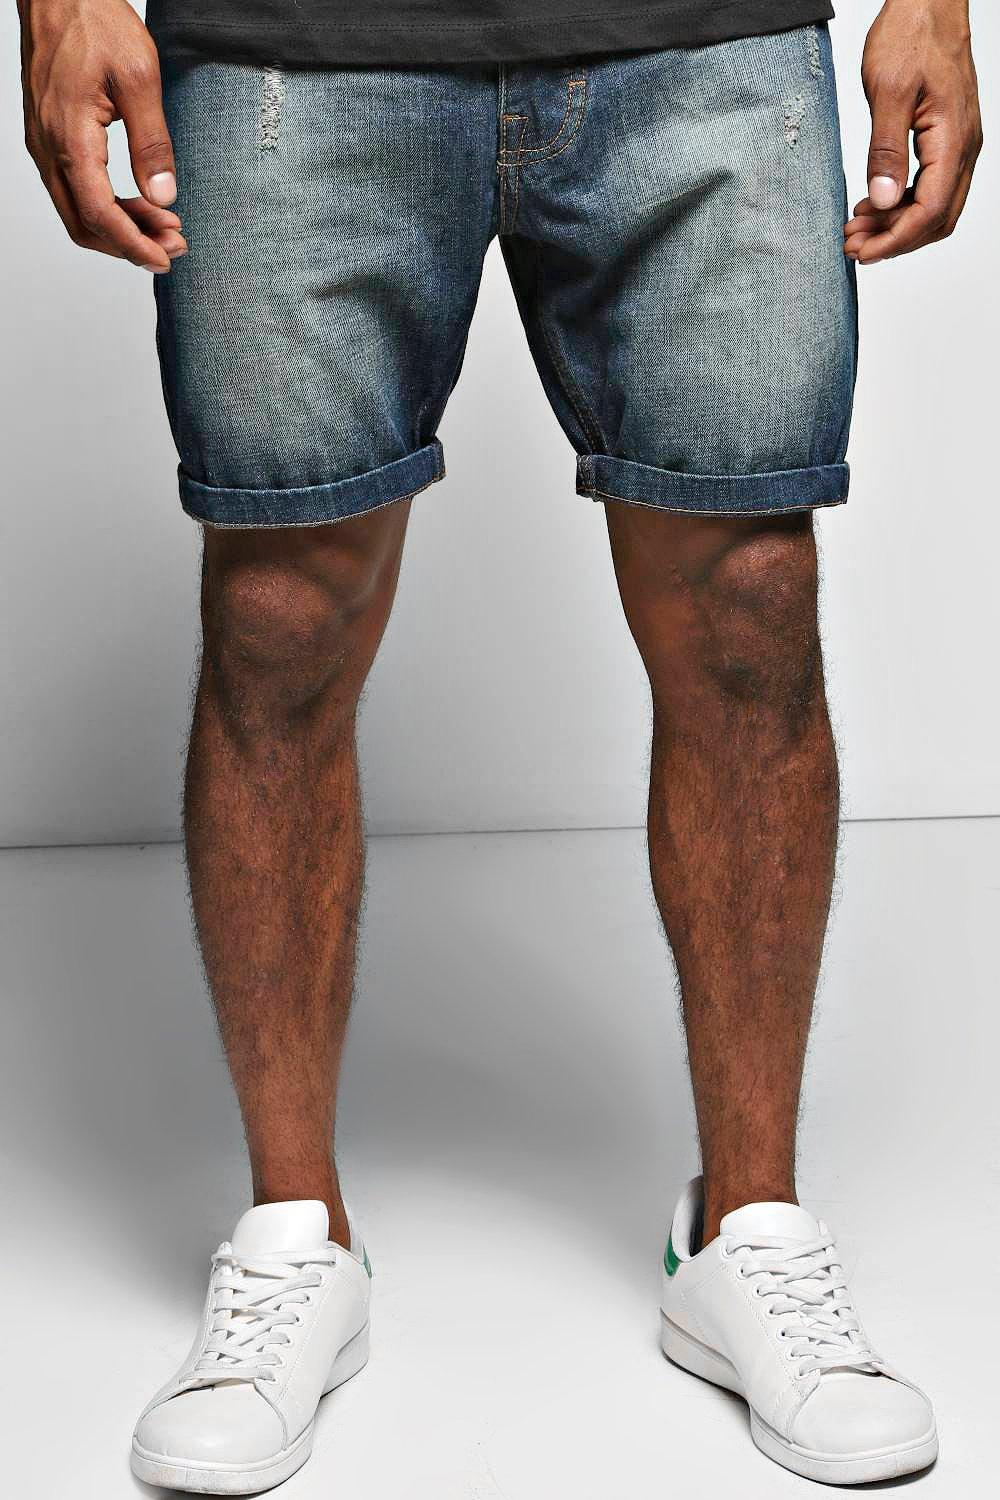 Sand Blasted Abrased Denim Shorts